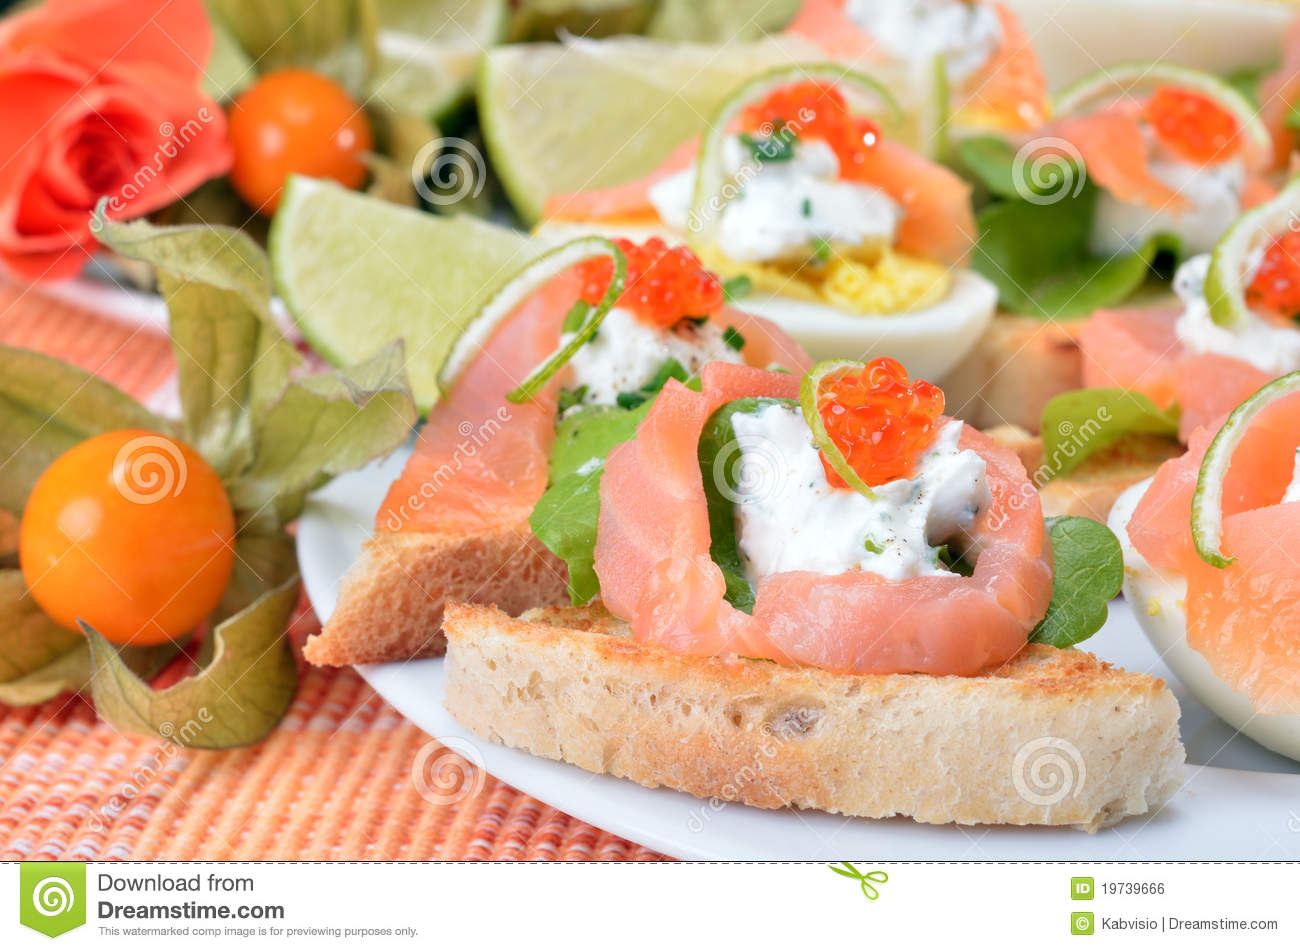 Canapes with salmon and caviar royalty free stock image for Canape with caviar